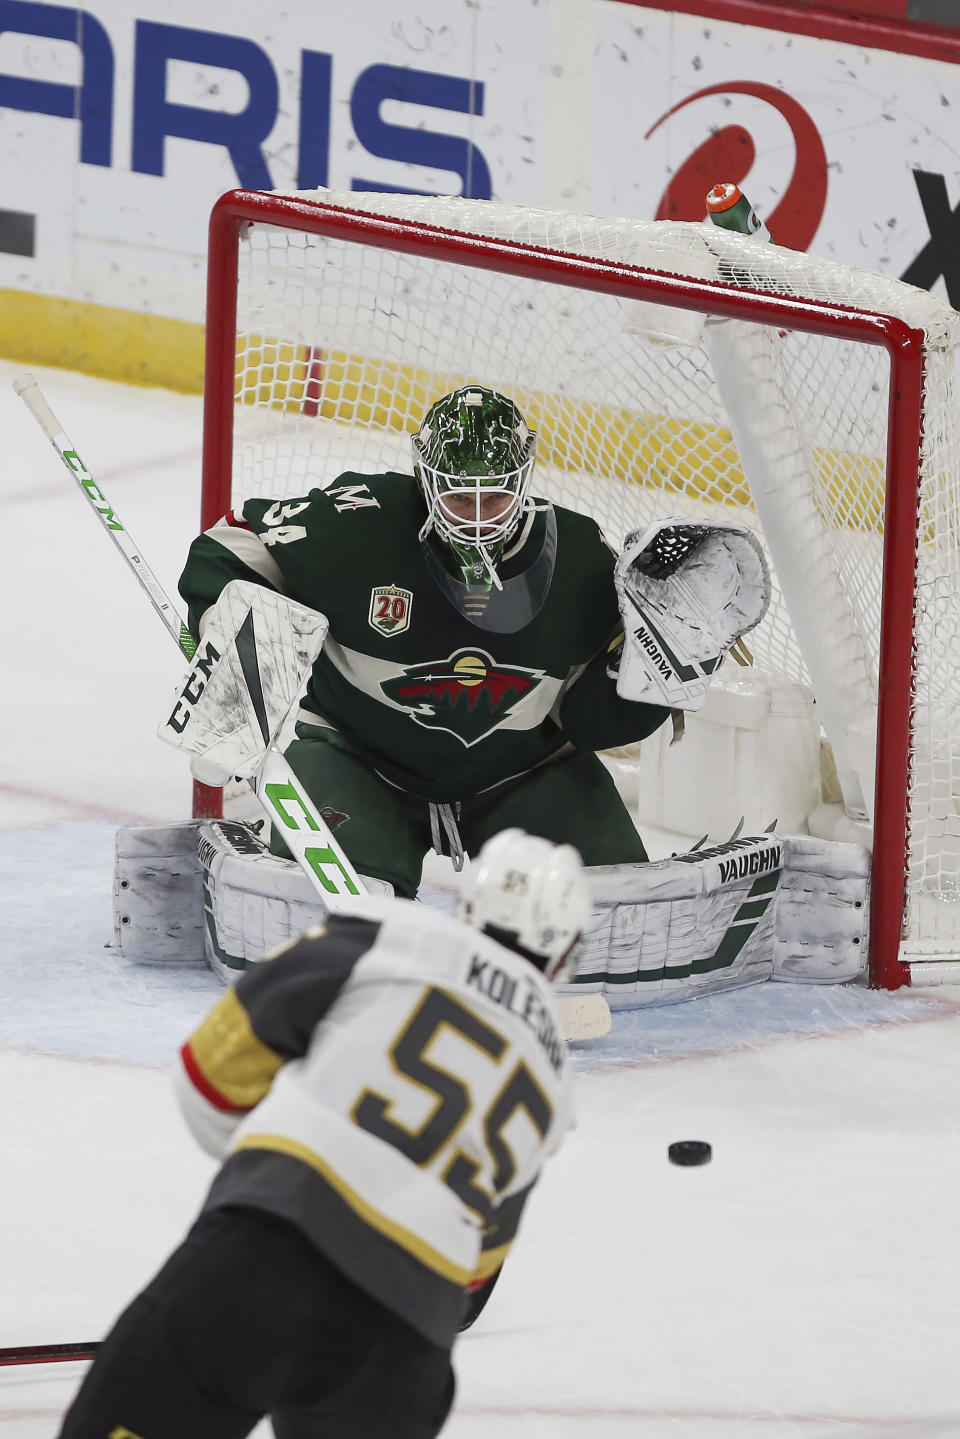 Minnesota Wild goalie Kaapo Kahkonen (34) gets ready for the puck shot by Vegas Golden Knights' Keegan Kolesar (55) in the first period of an NHL hockey game, Monday, March 8, 2021, in St. Paul, Minn. (AP Photo/Stacy Bengs)